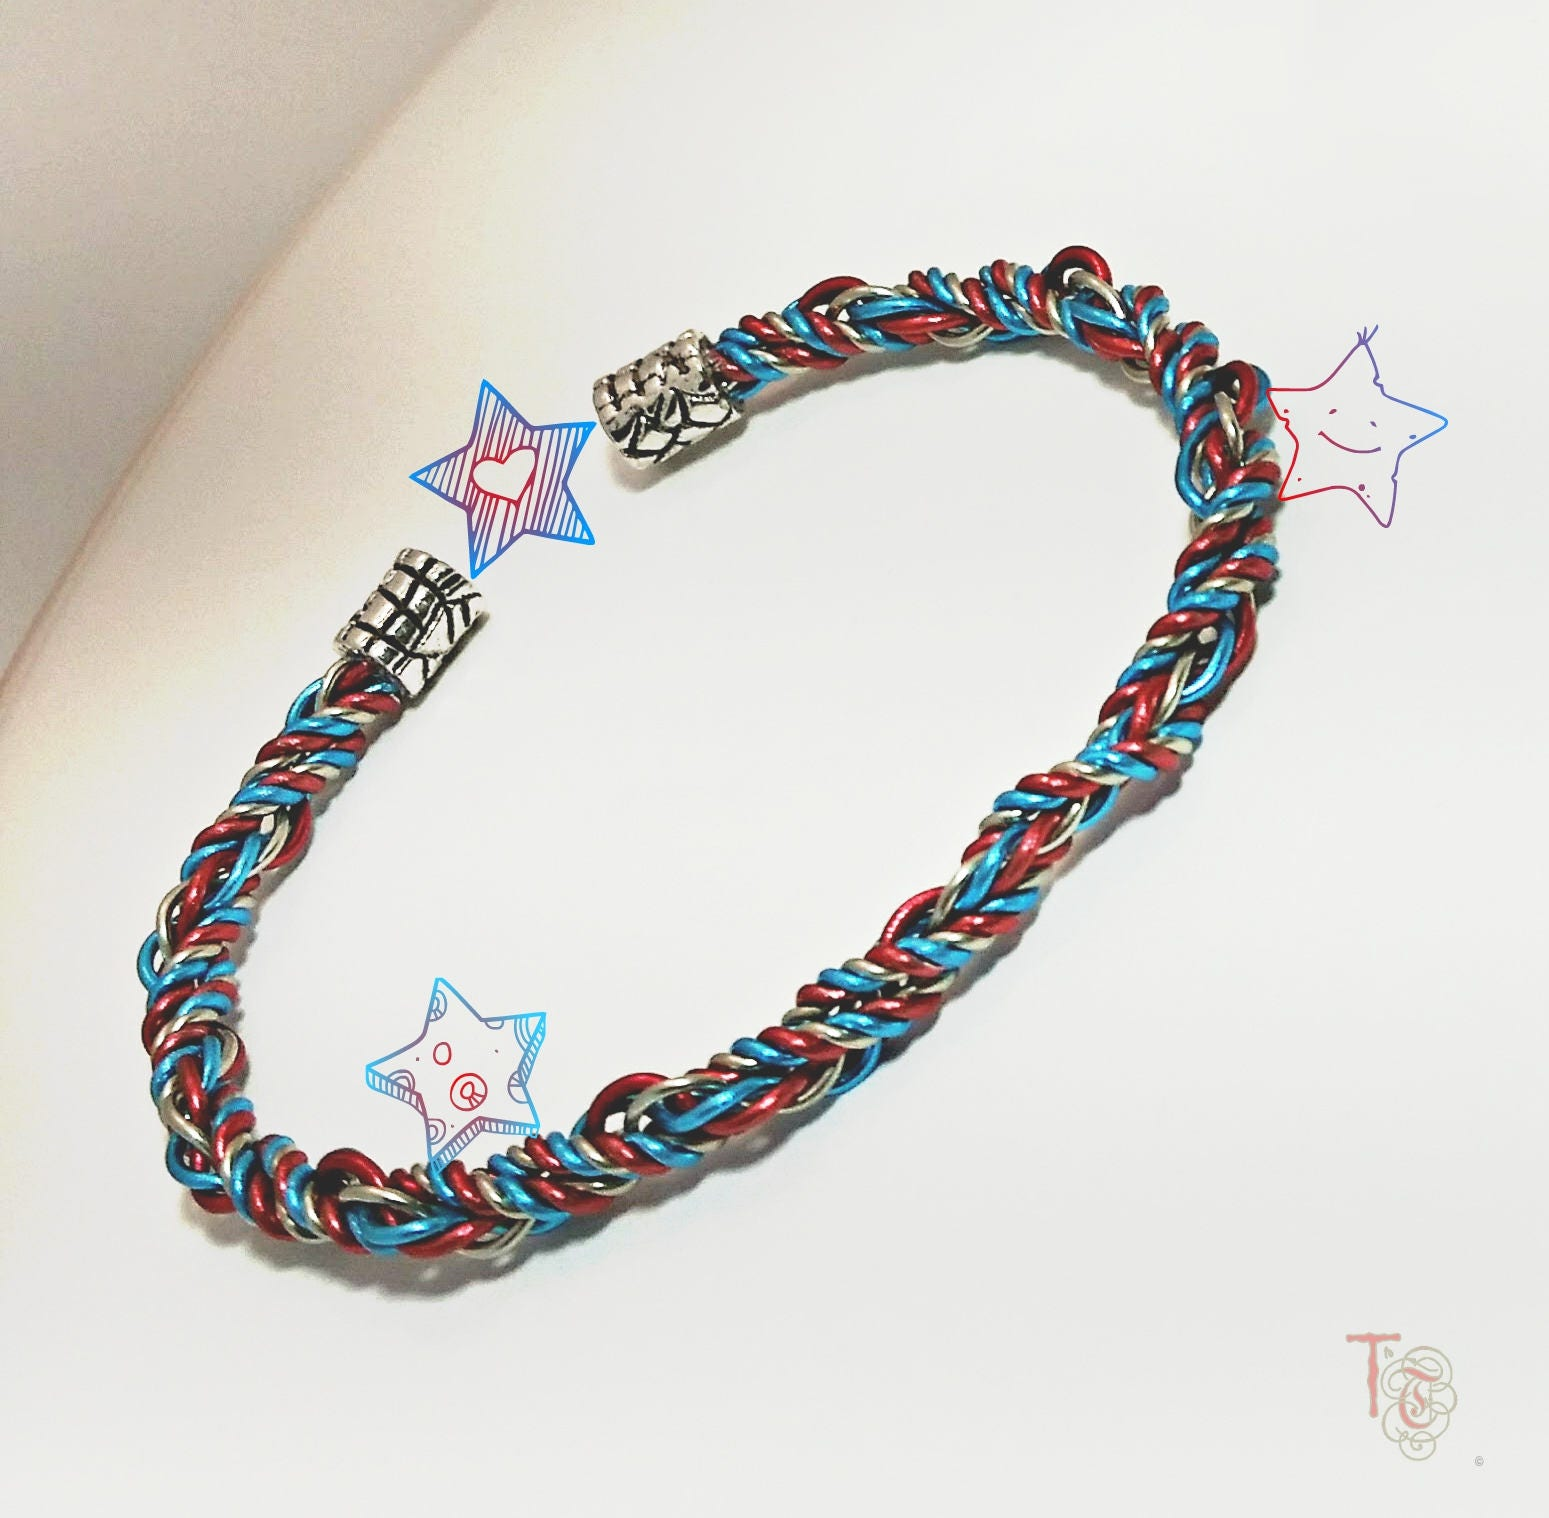 Patriotic Bangle, Twisted Wire Bangle of Red, White, and Blue